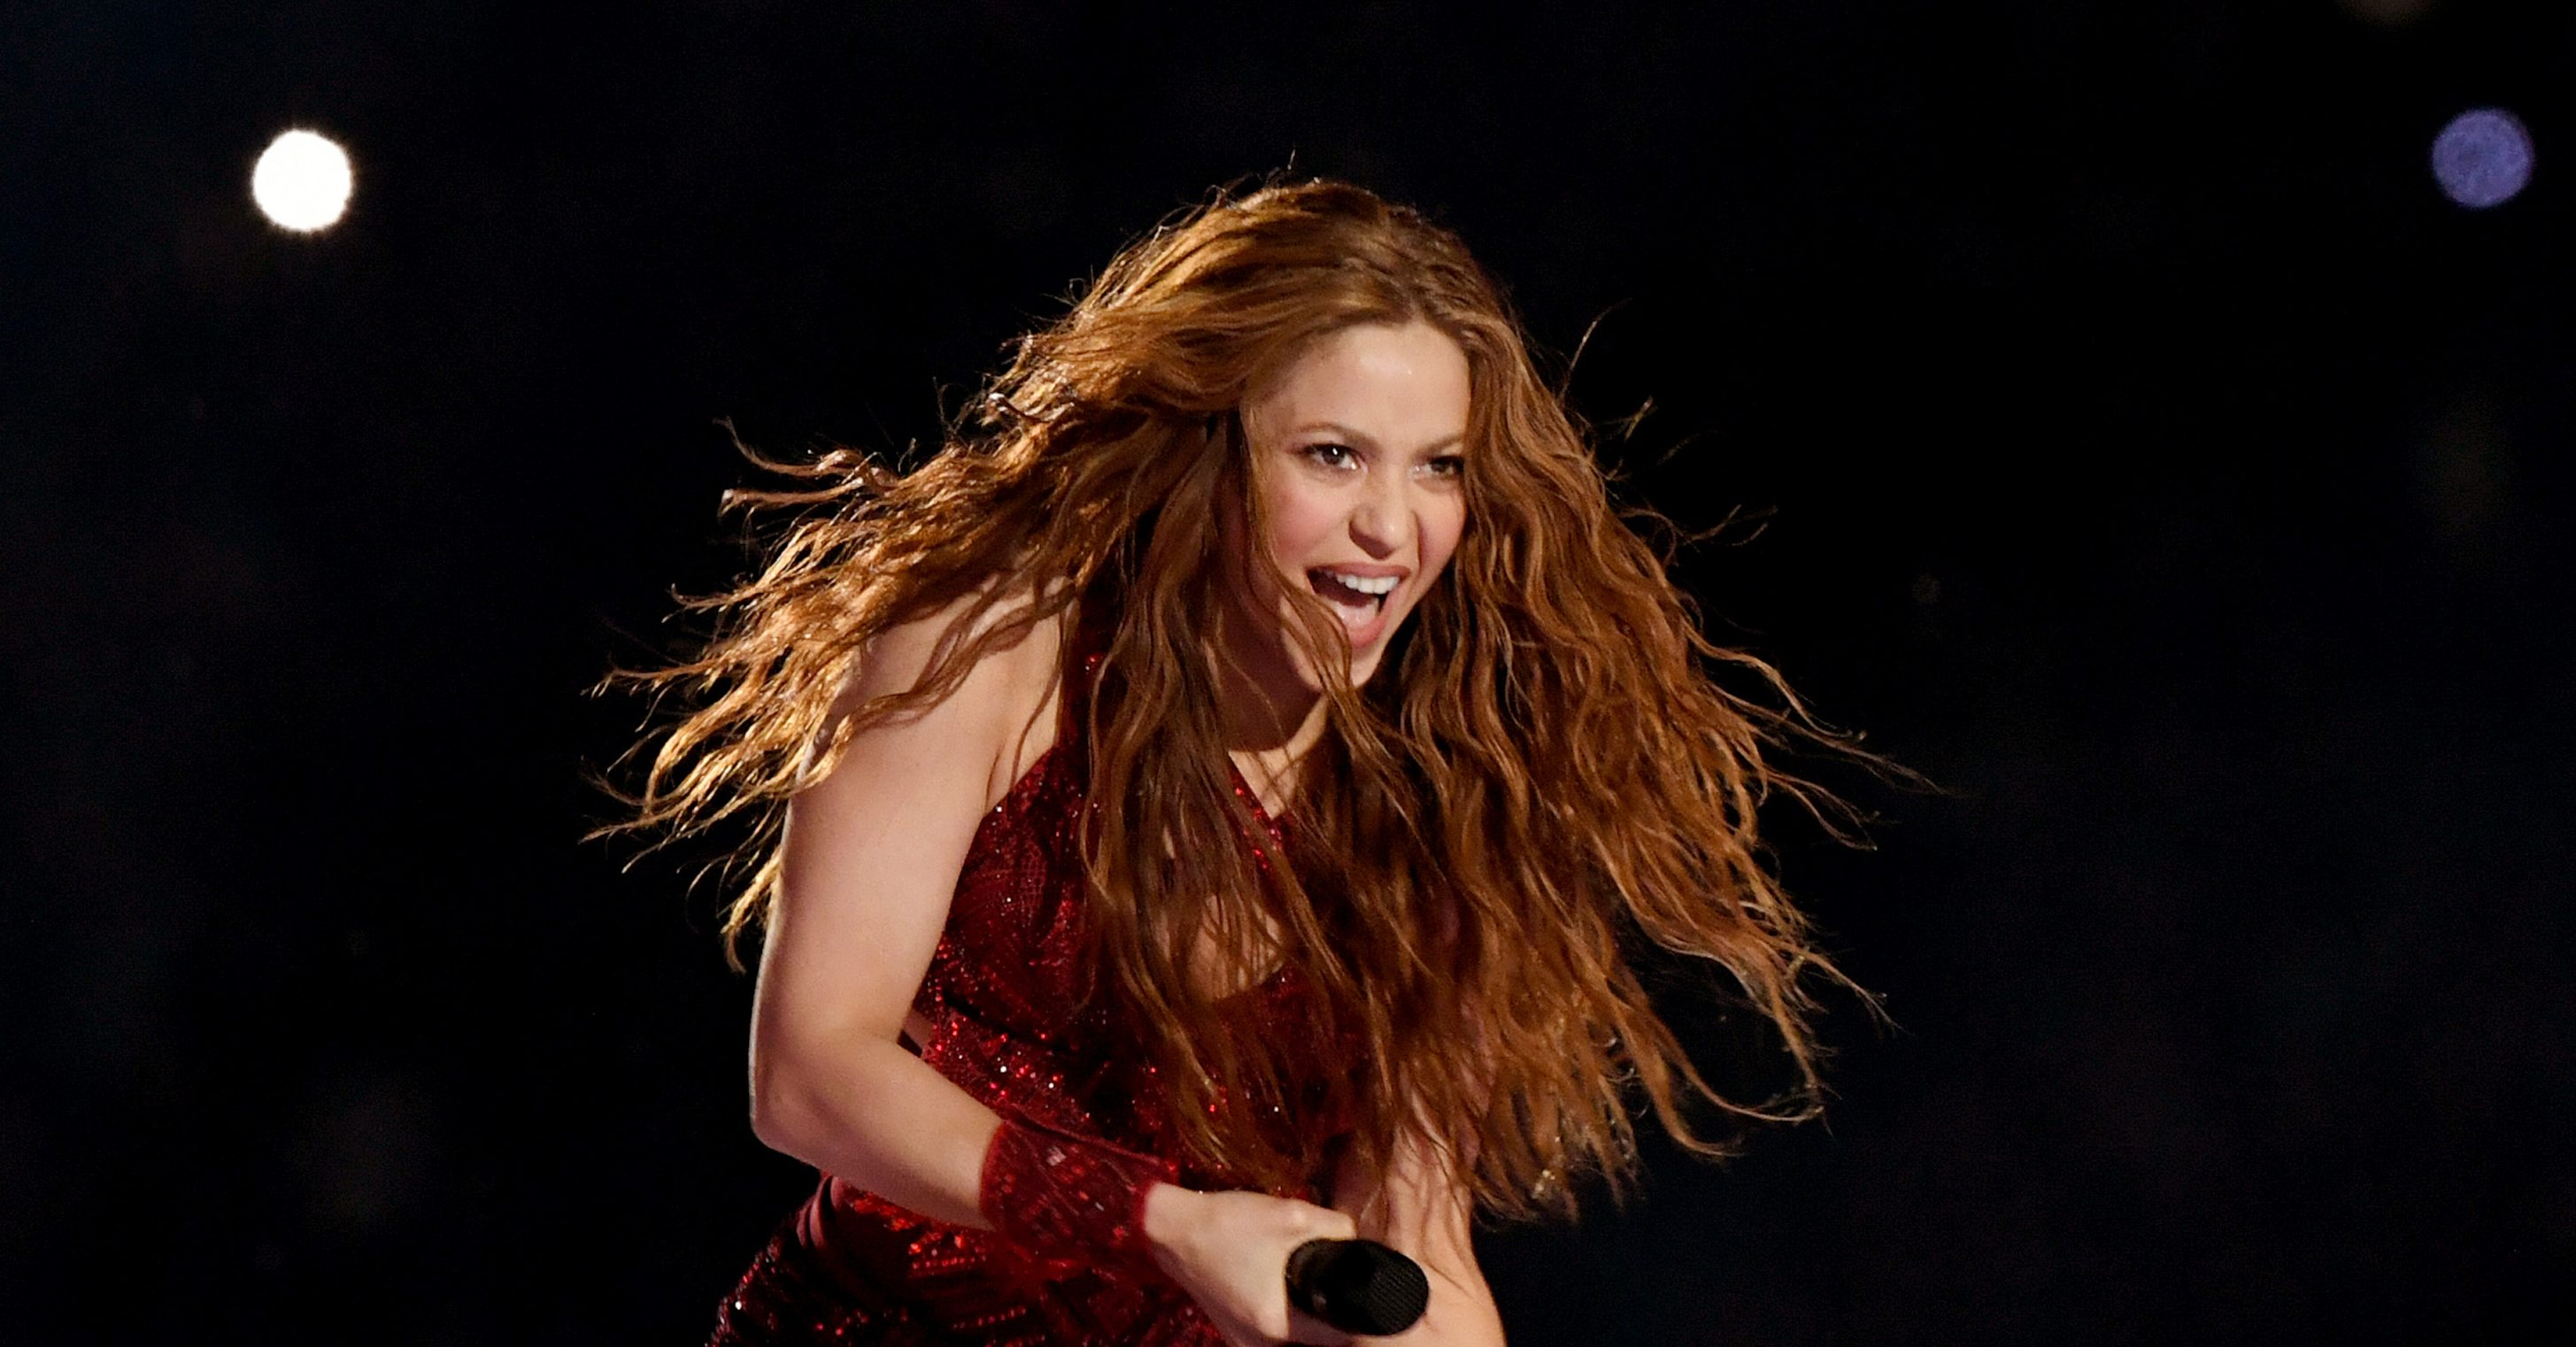 shakira-gettyimages-1203860160-e1580783962995